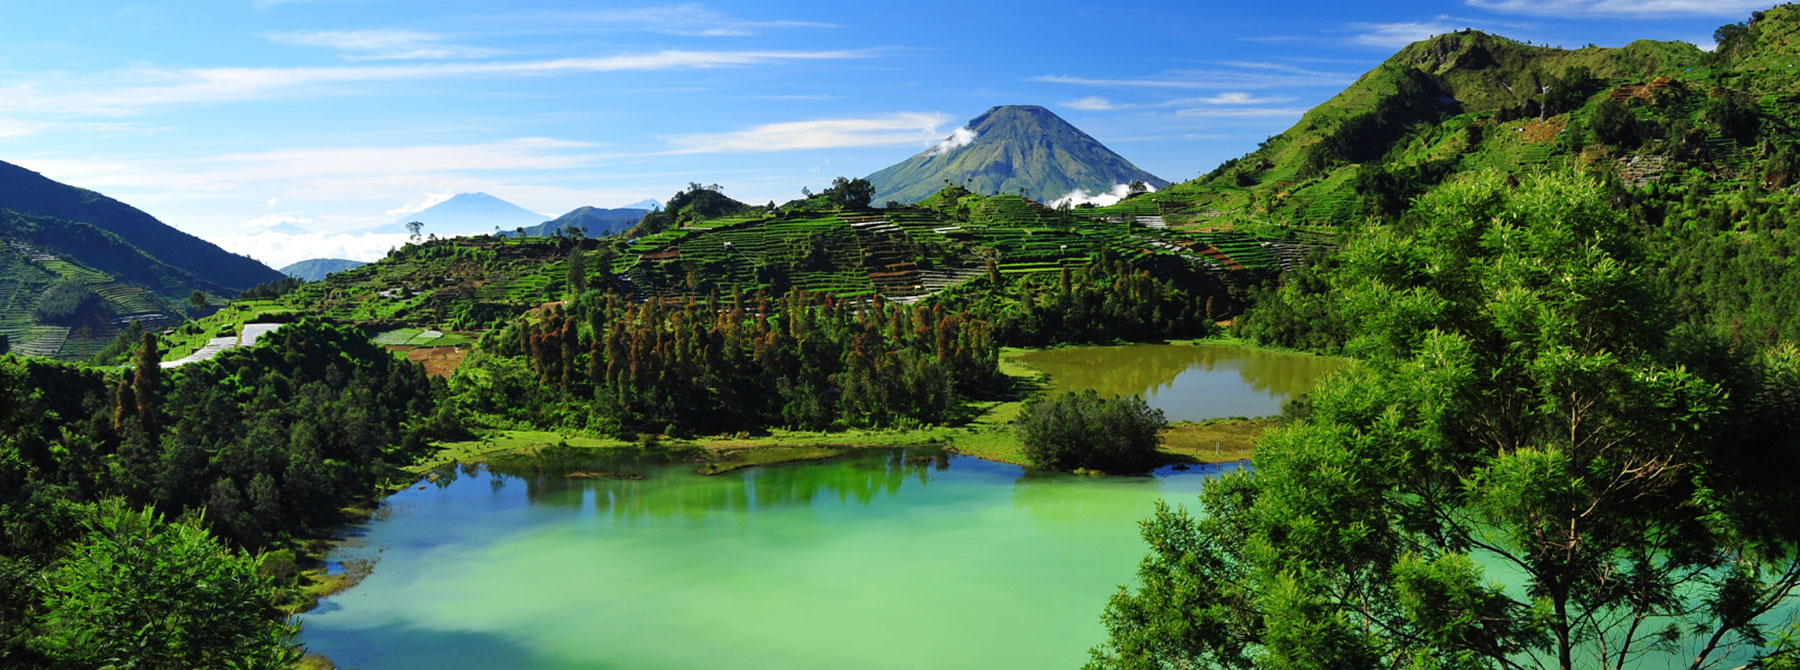 Indonesia Tour Package Indonesia Holiday Packages